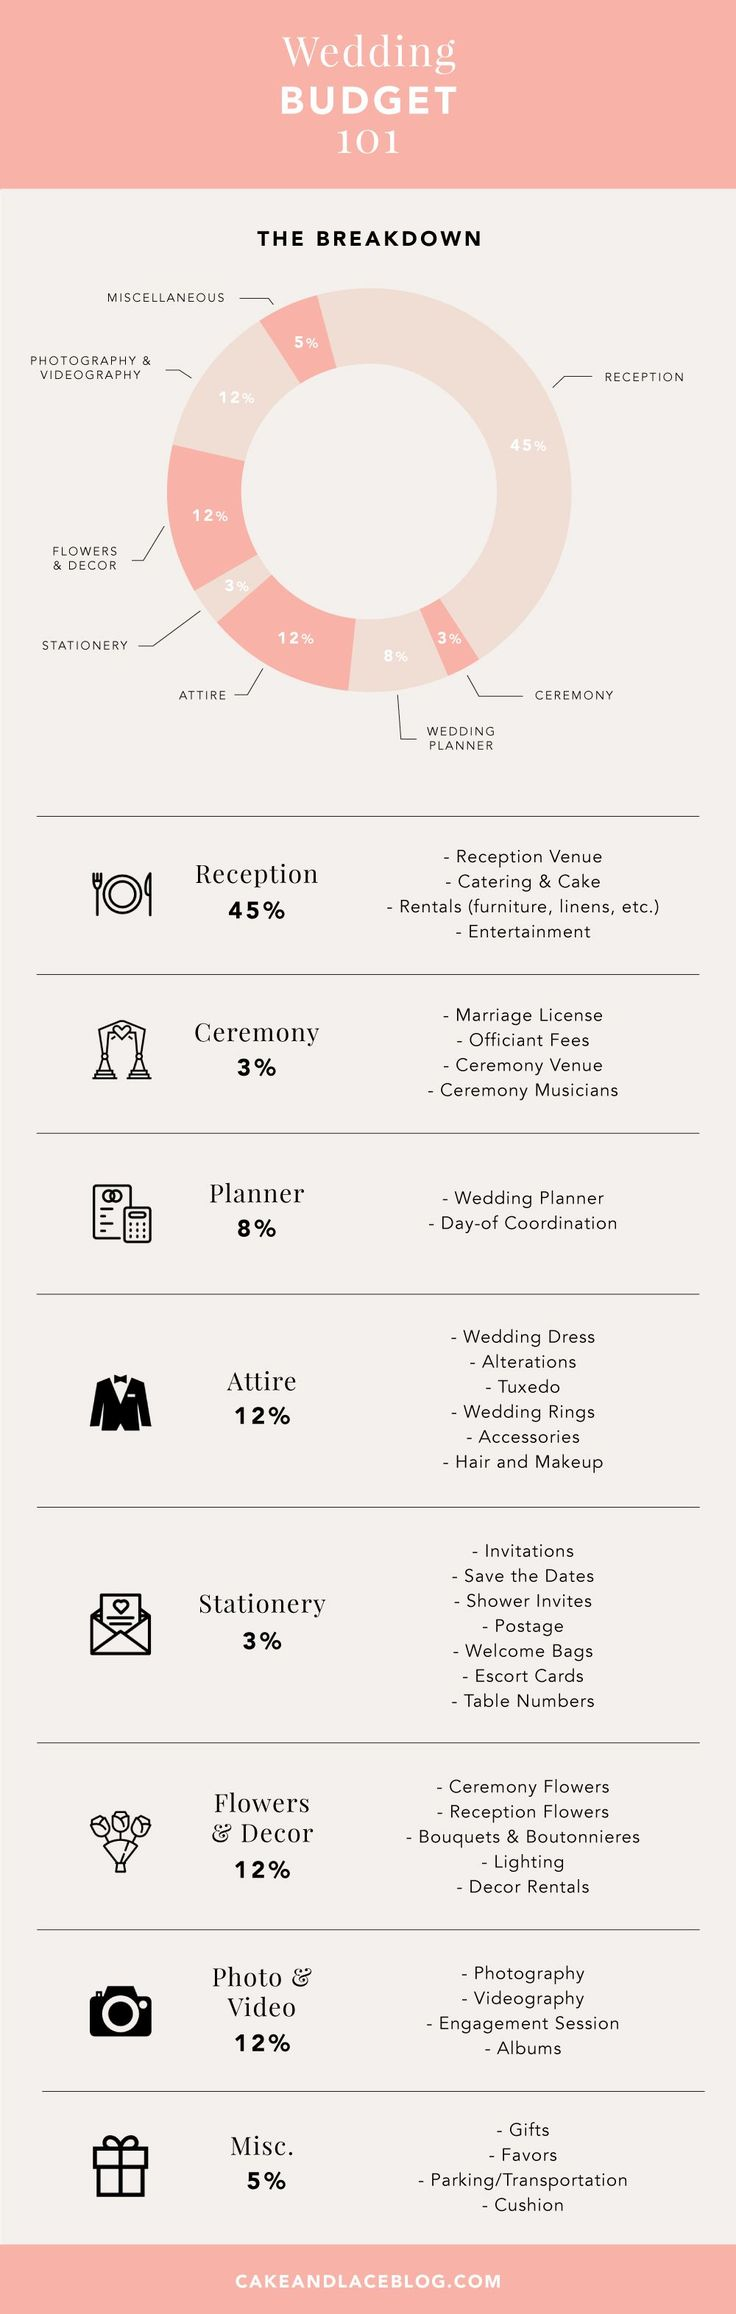 Best 25 Budget Wedding Ideas On Pinterest A And Rings